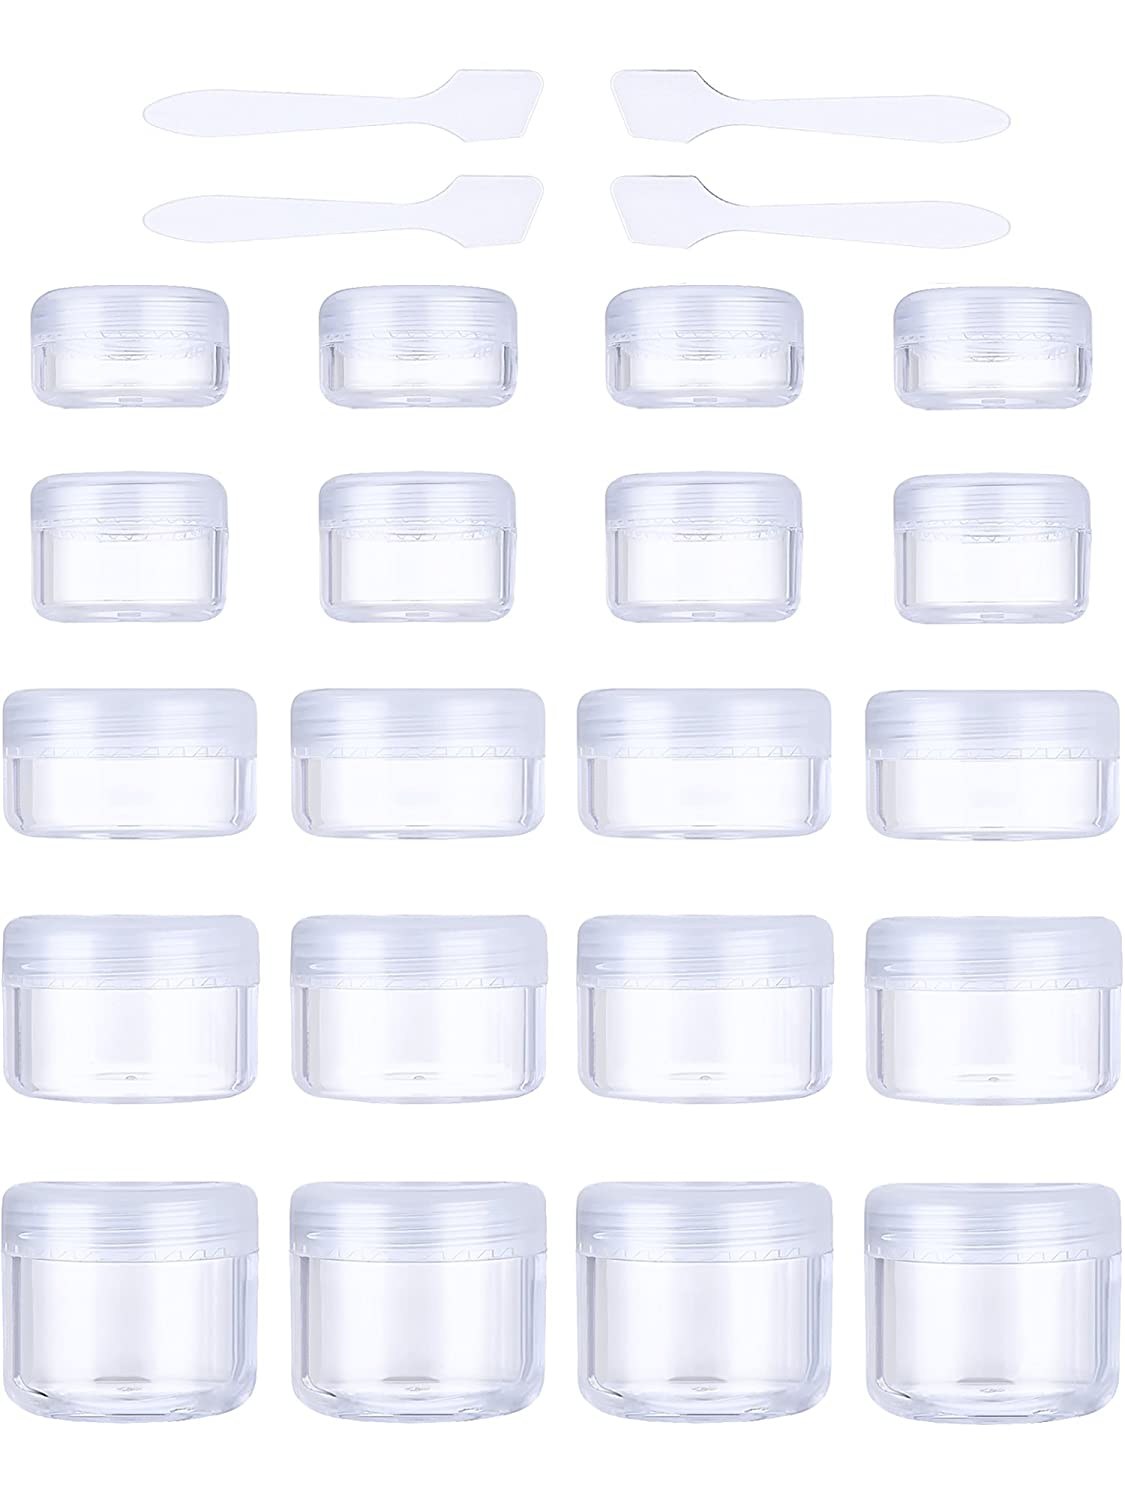 20 Pieces Empty Plastic Sample Containers Clear with Lids 3/5/ 10/15/ 20 Gram Size Round Cosmetic Pot Jars and 4 Pack Mini Spatula (White) Pangda